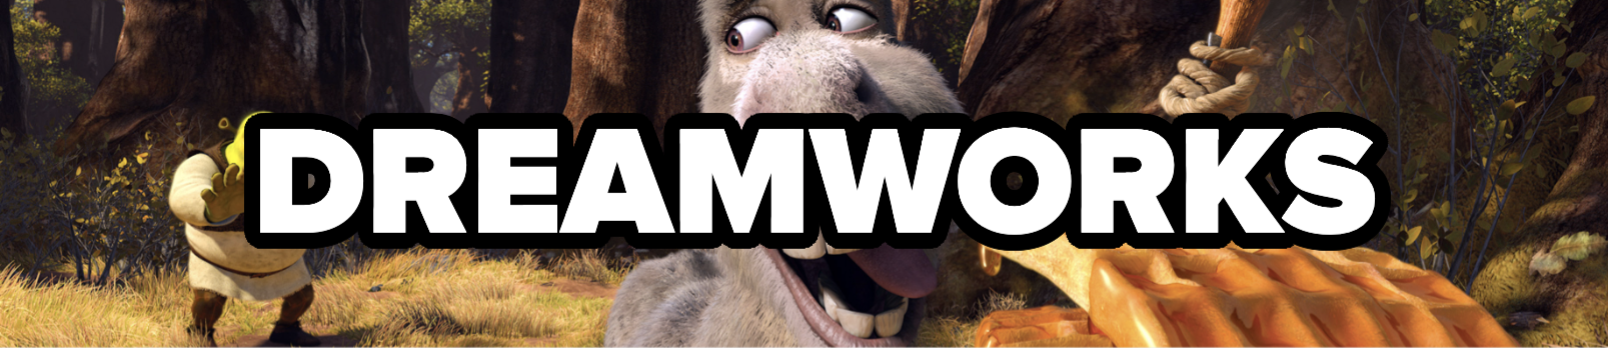 DREAMWORKS, with Shrek and Donkey in the background